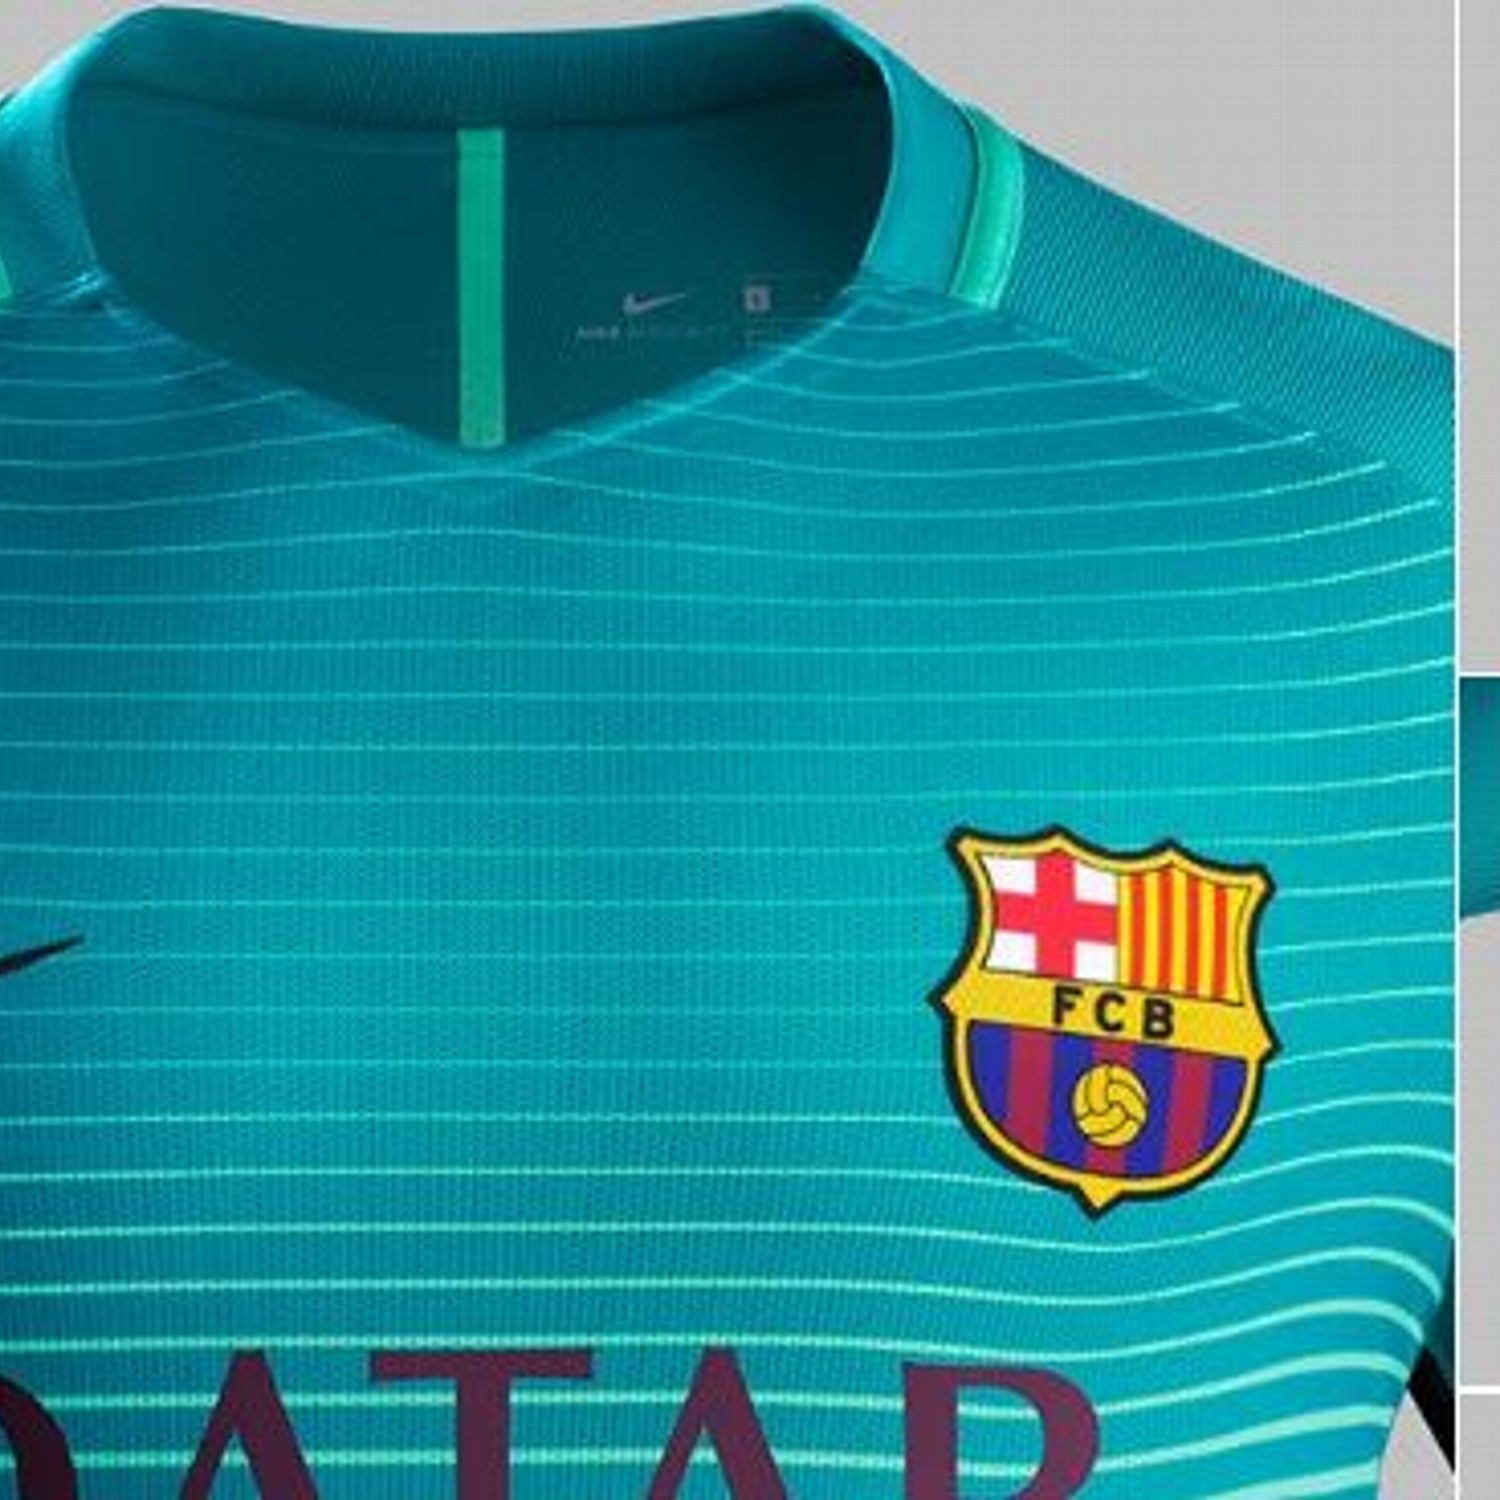 Barcelona 3 0 Liverpool In Game And Post Match Discussion: Barcelona To Wear Glowing Green Kit In UCL Against